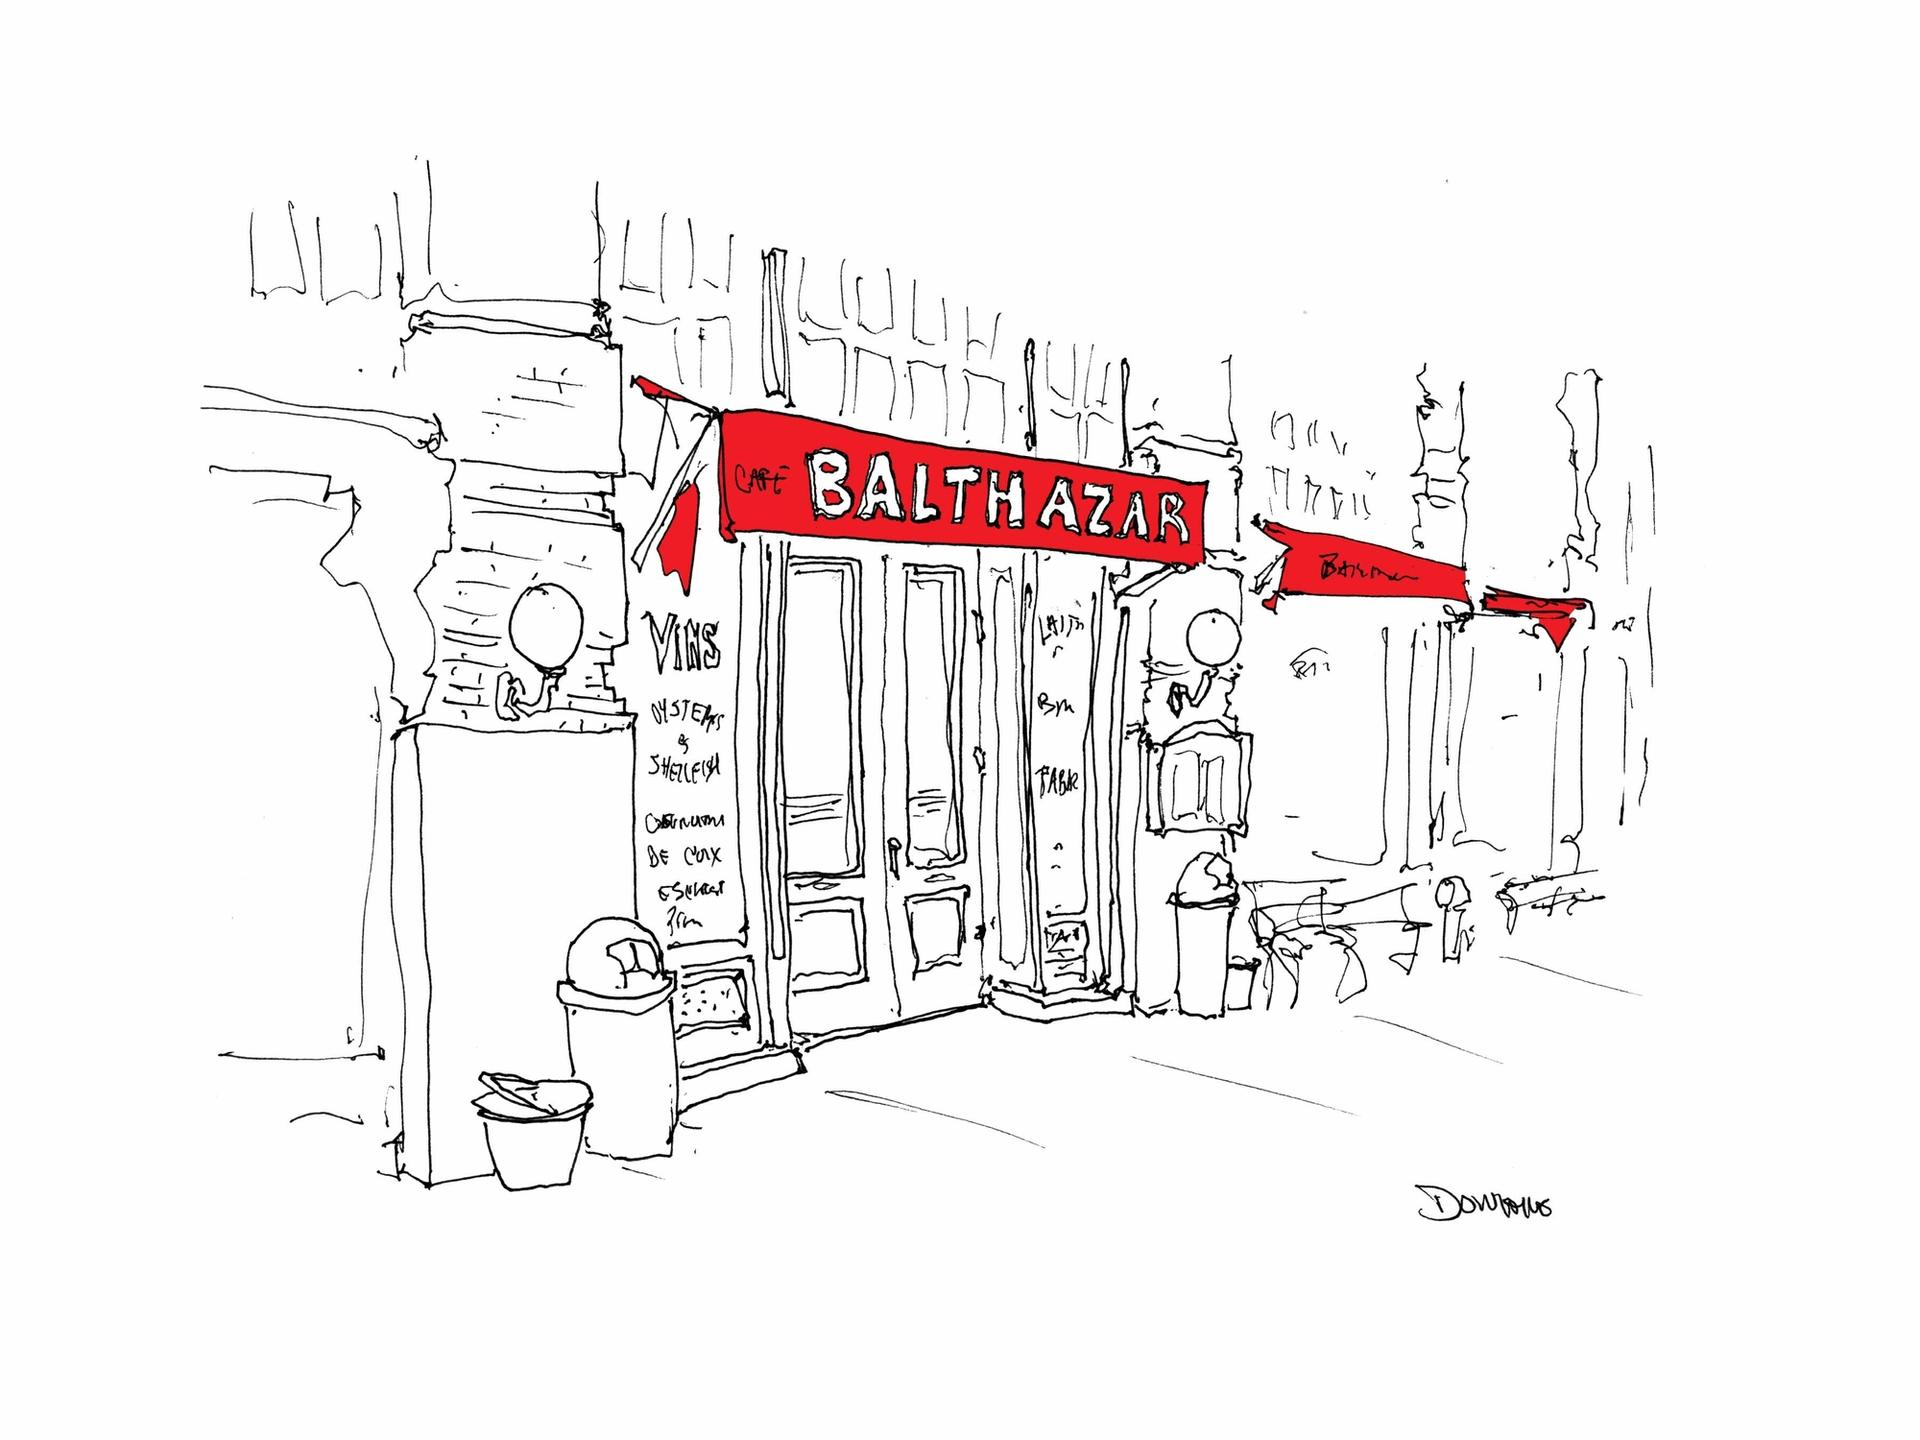 Donahue has been sketching New York's favourite eateries since 2017. Courtesy of the artist